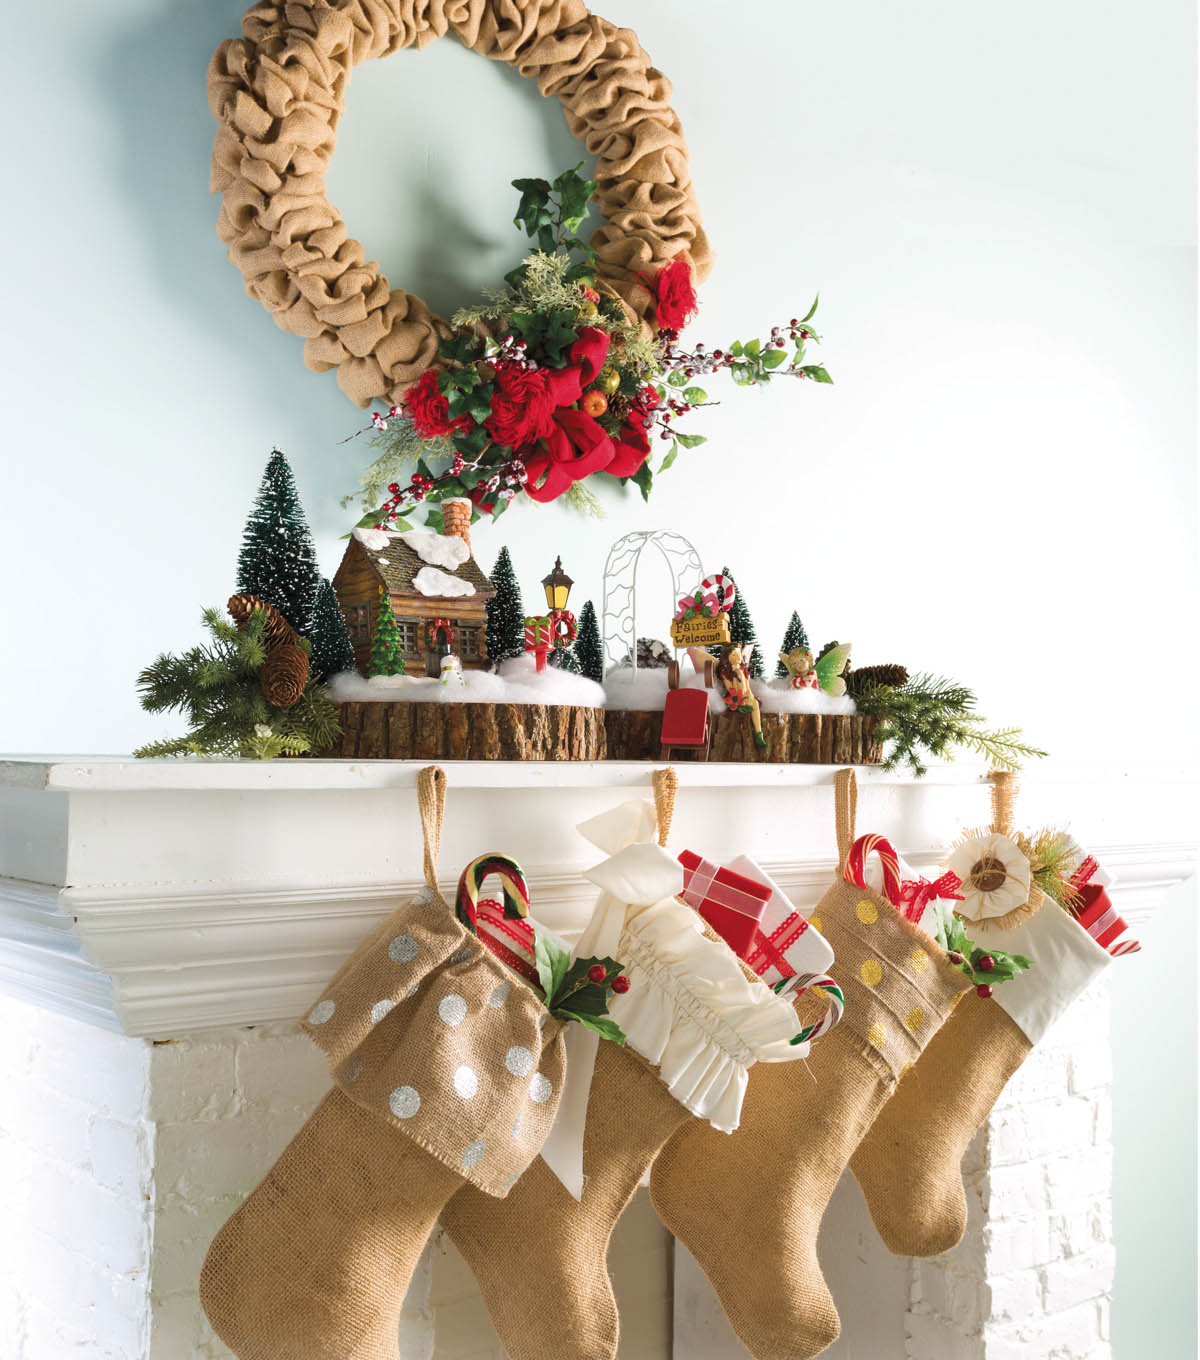 Burlap Wreath and Stockings